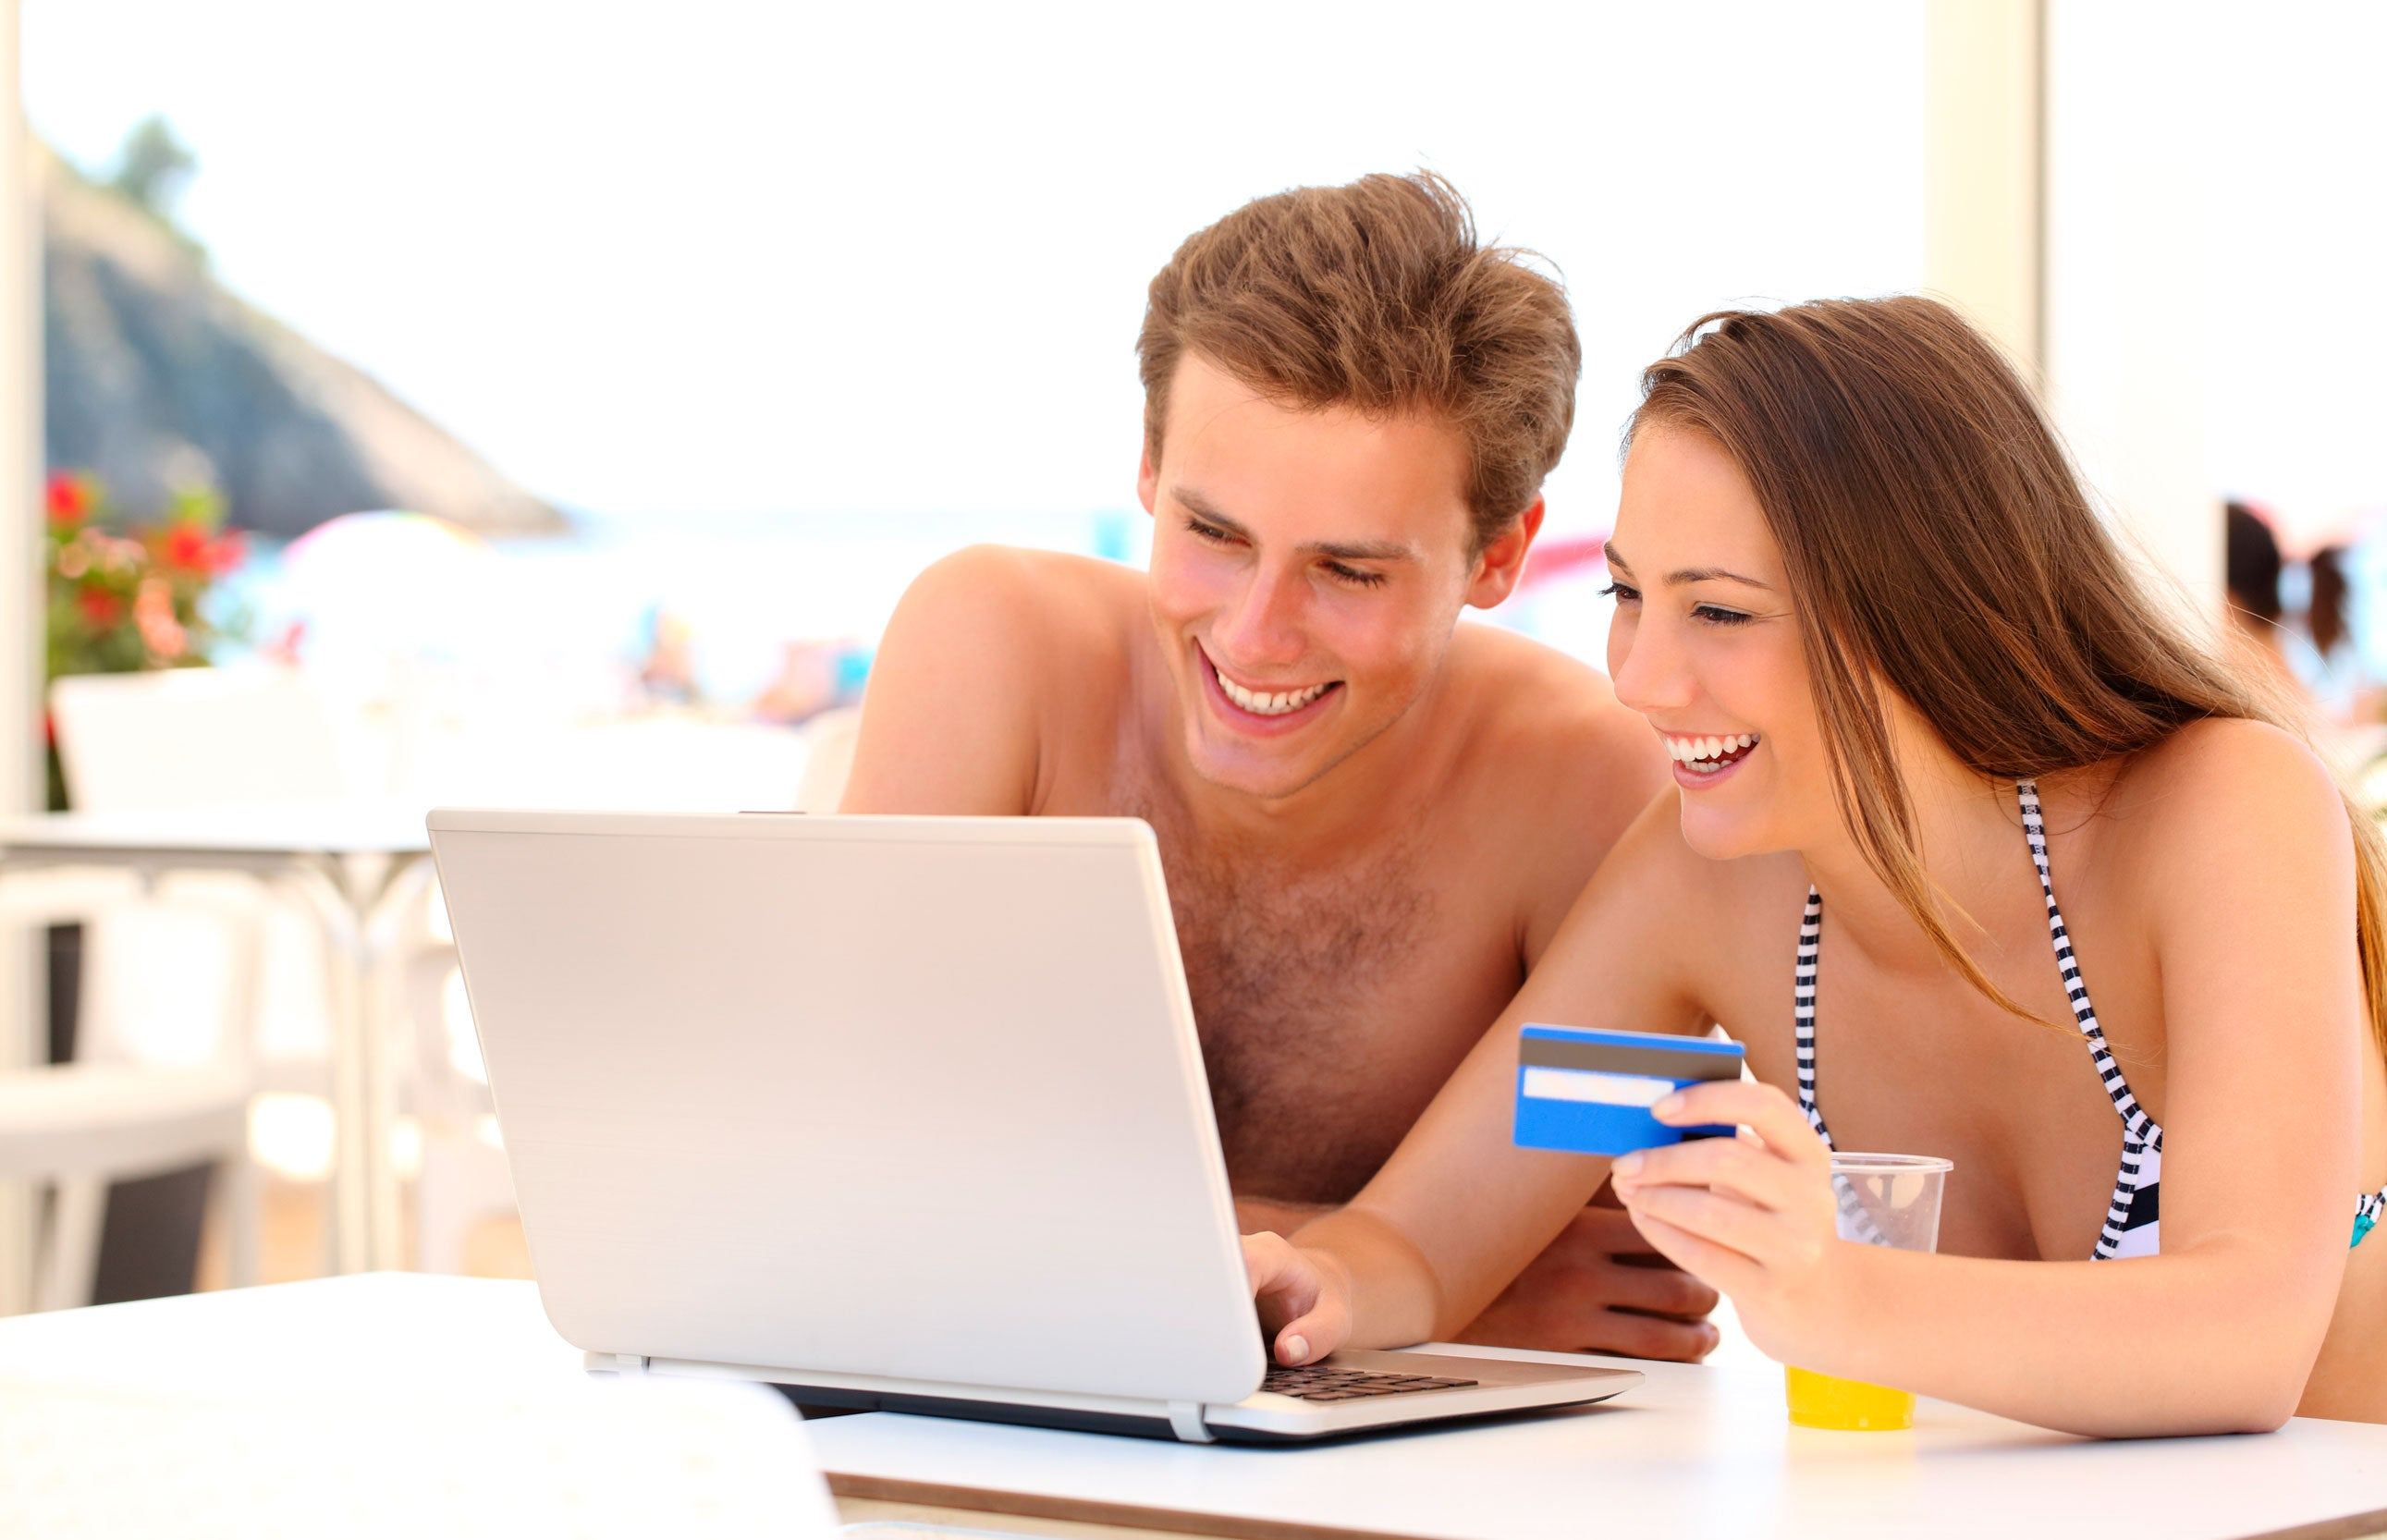 7 Things You Can Do to Get a Better Credit Card | Credit.com